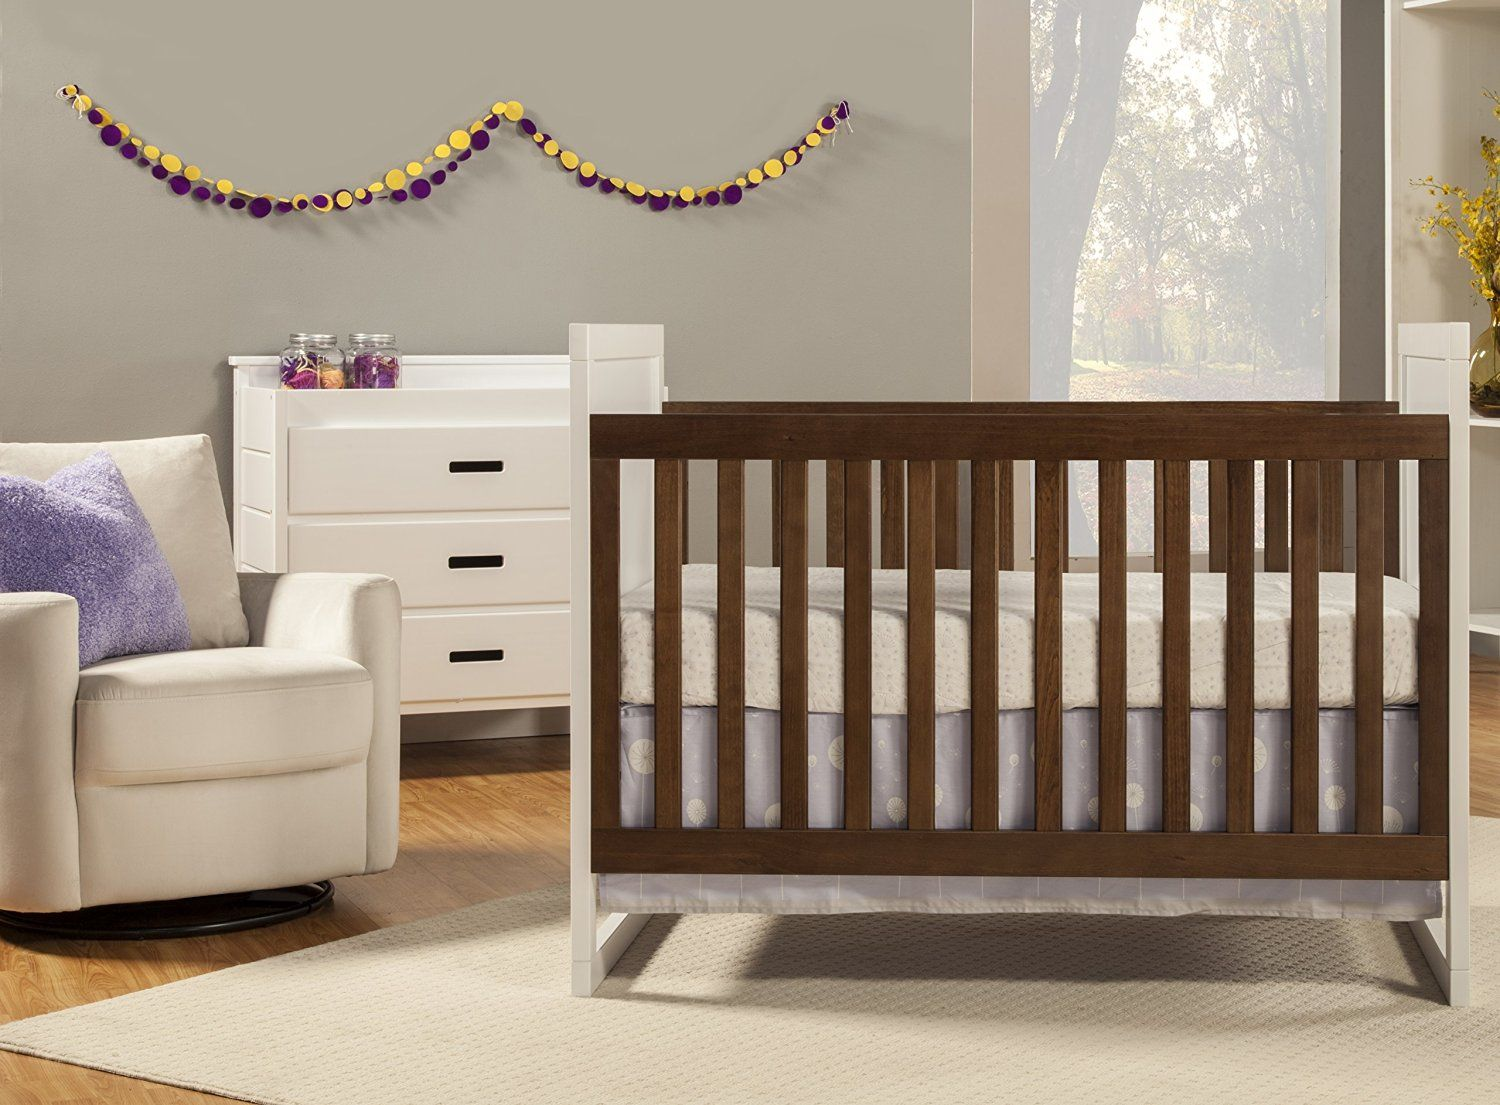 Baby Mod Modena Mod Two Tone 3 In 1 Convertible Crib